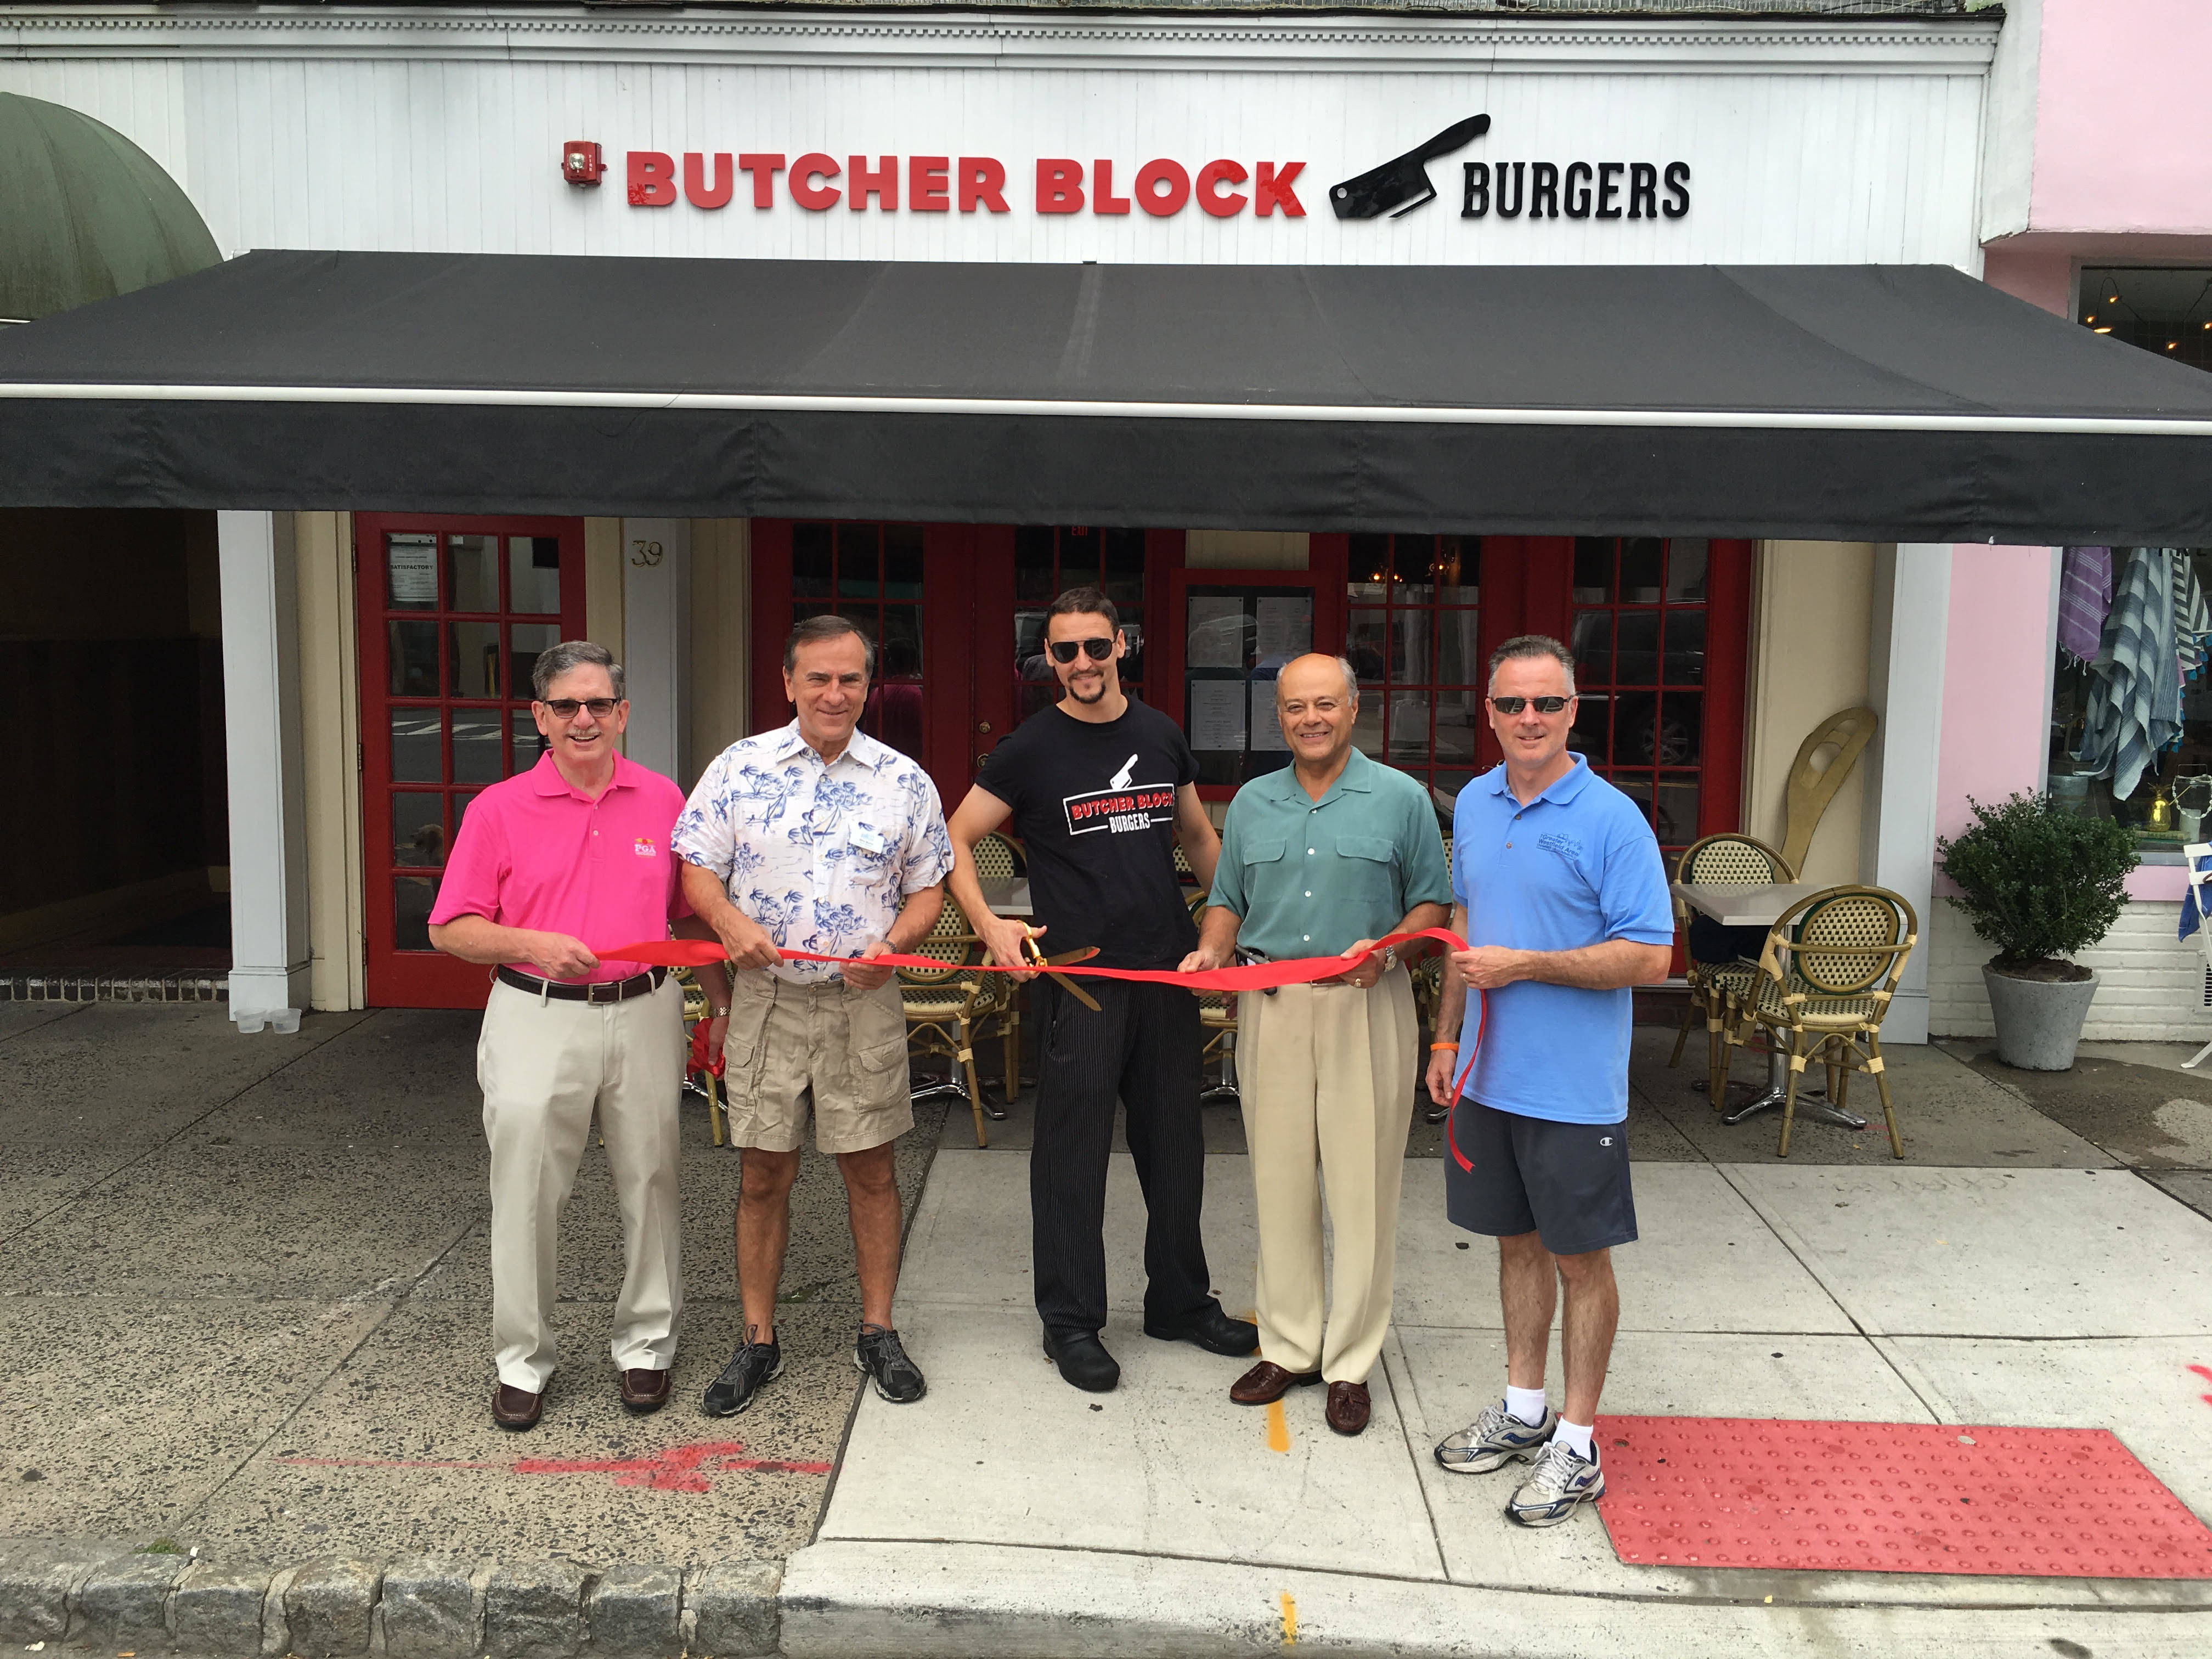 Butcher Block Burgers A Restaurant By Chef C J Reycraft Jr Celebrated Its Grand Opening With Ribbon Cutting Saay Aug 6